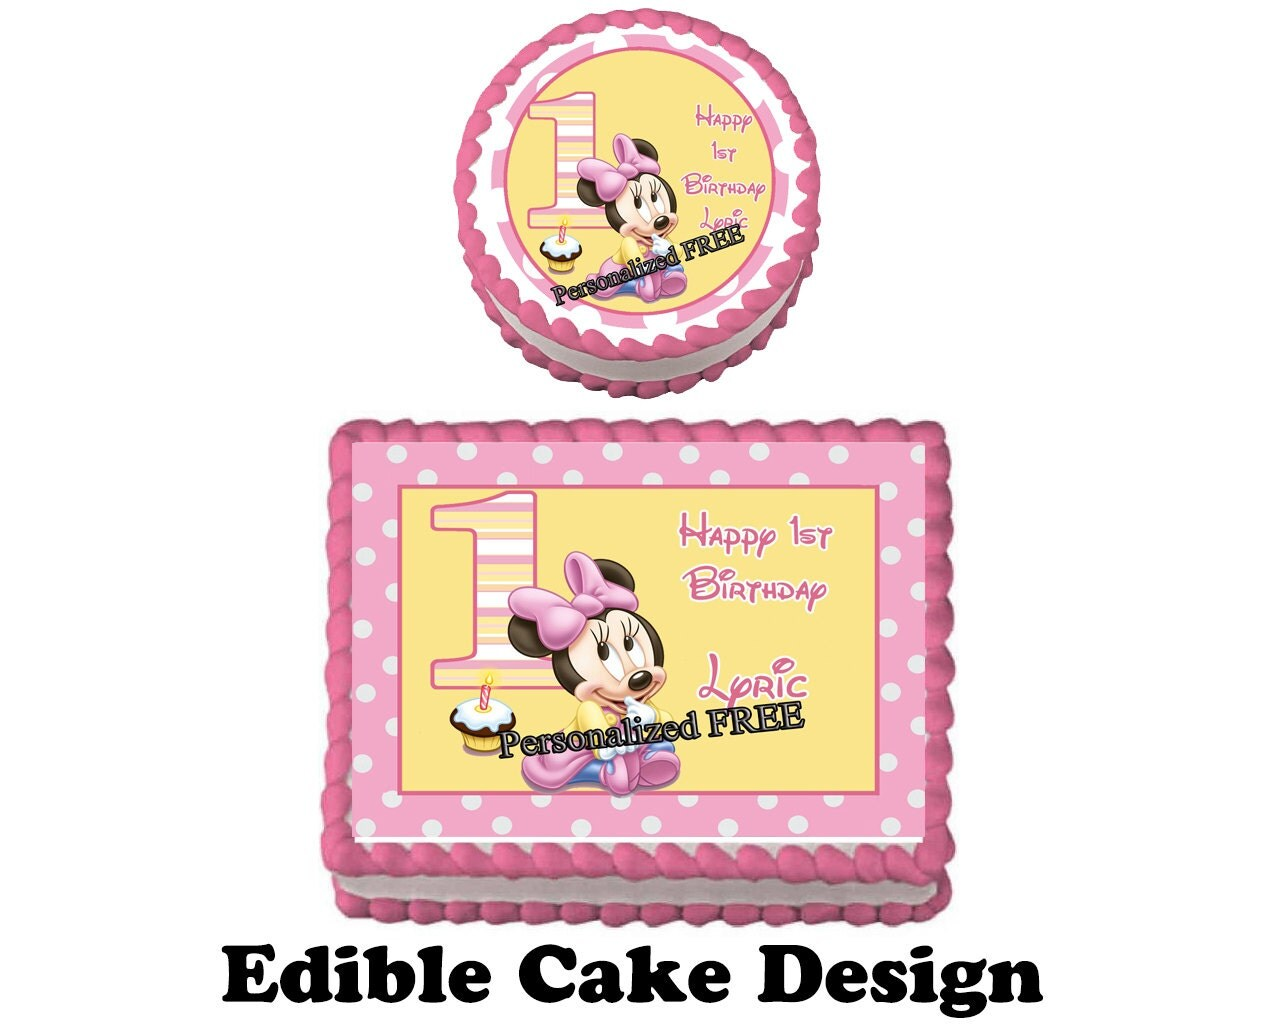 Edible Cake Images 1st Birthday : MINNIE MOUSE 1st Birthday Party Edible Image Cake by ...